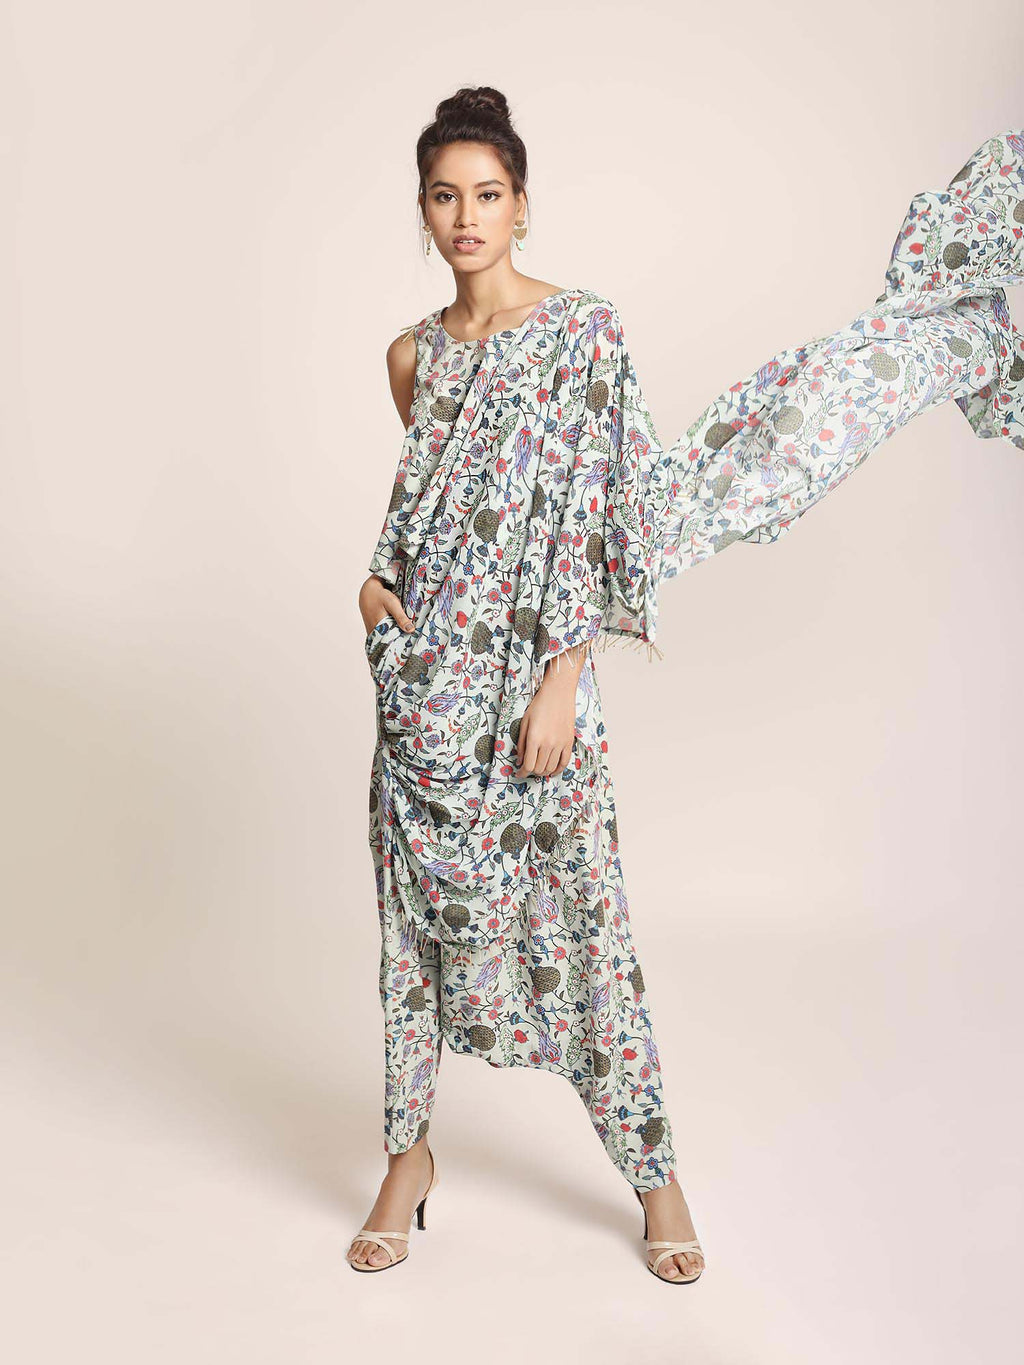 Blue Printed Art Crepe Top and Low Crotch Pant with attached Printed Art Georgette Drape - Riviera Closet